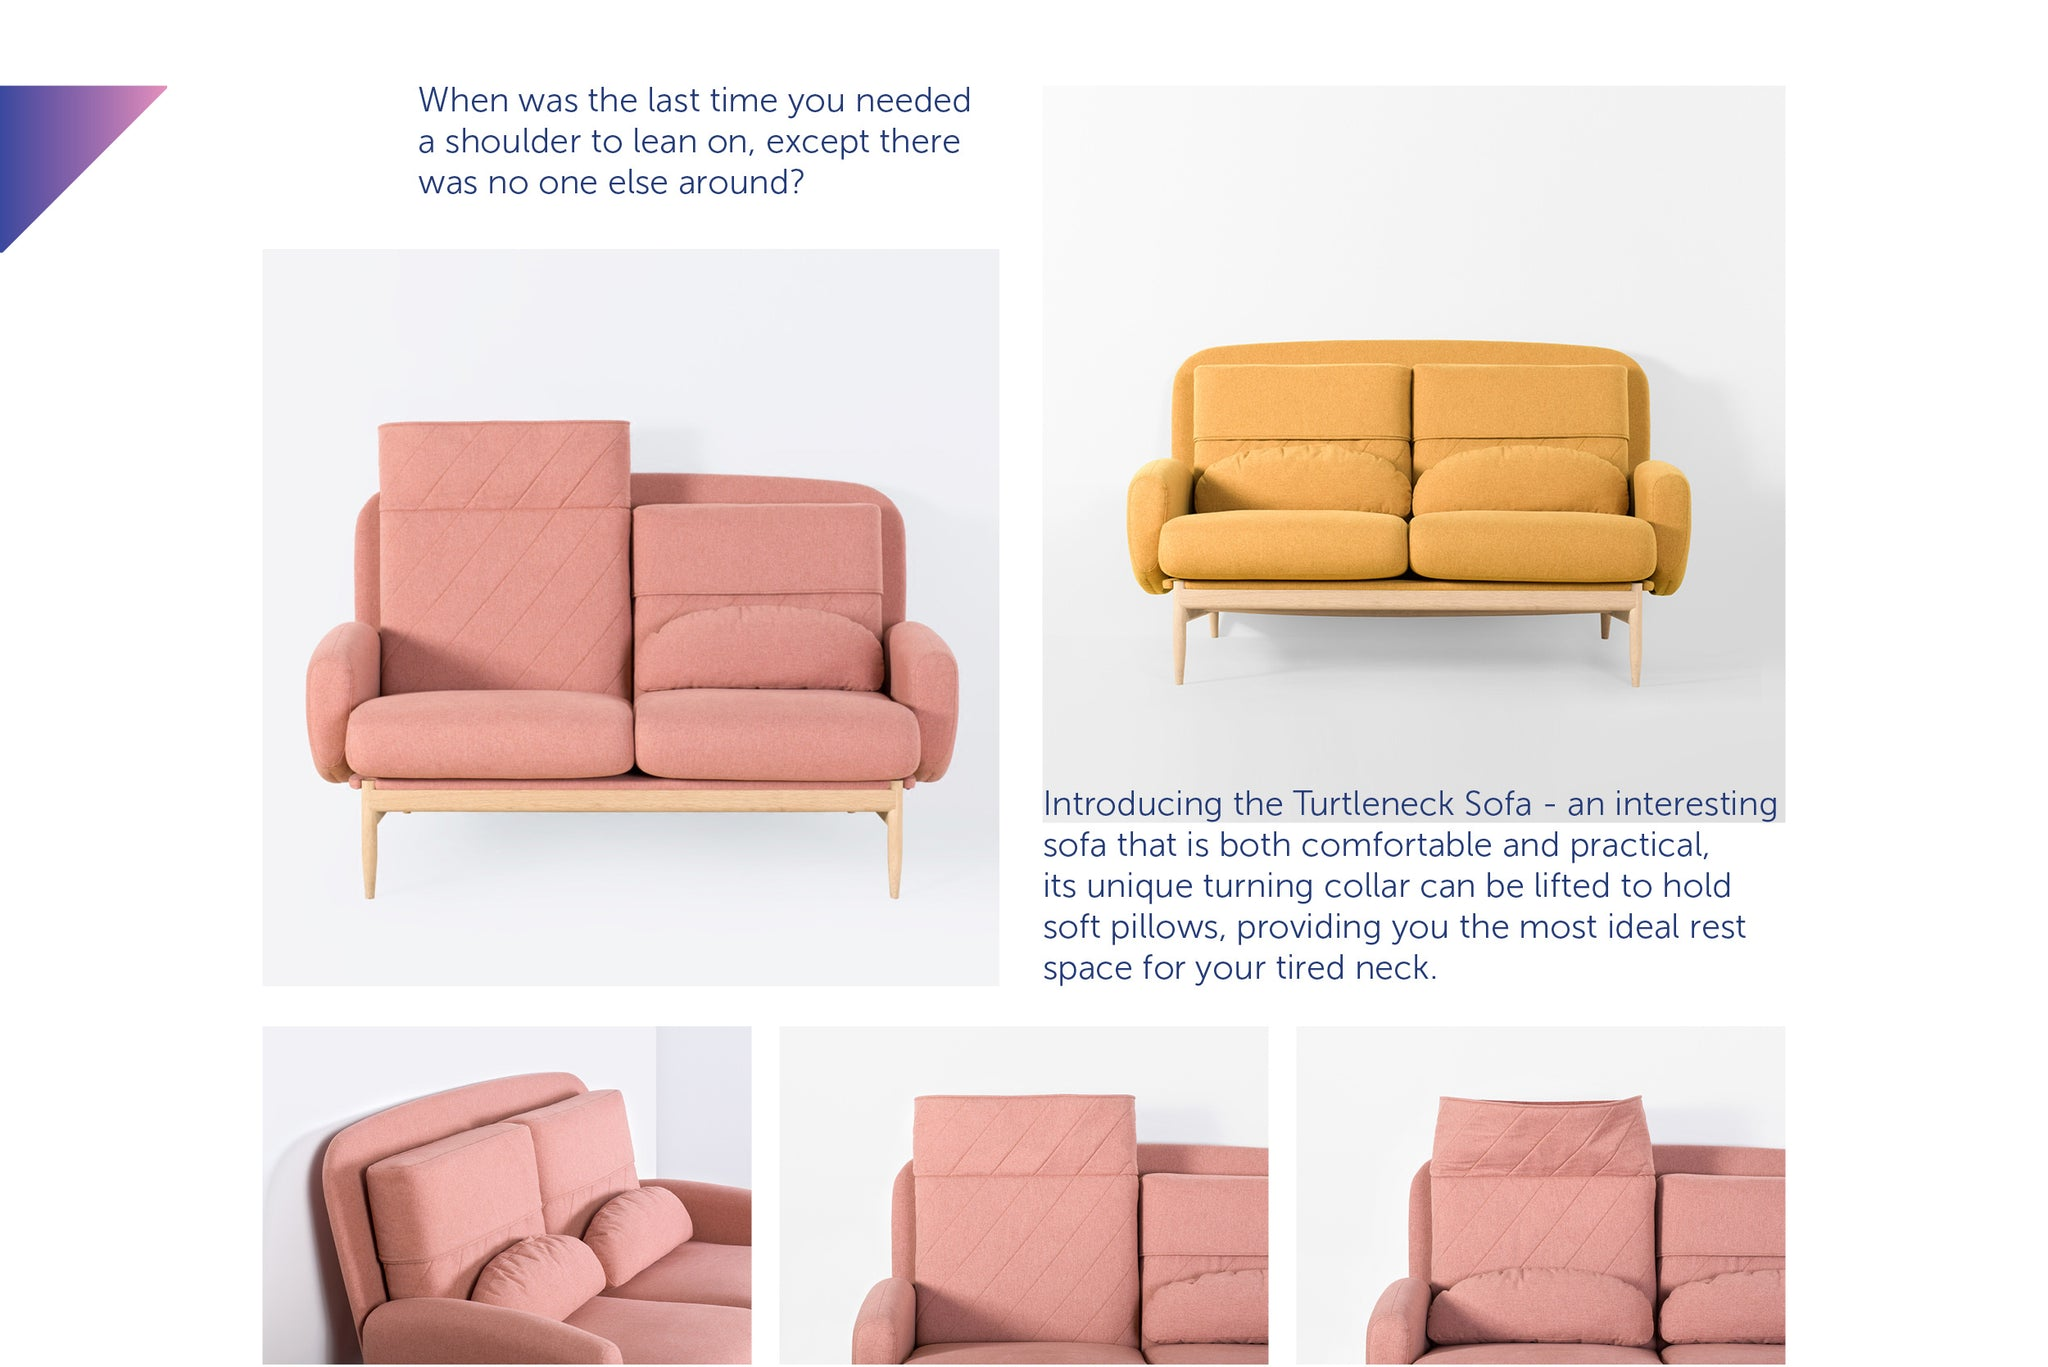 Turtleneck Sofa from Playful Angles Furniture by Ziinlife